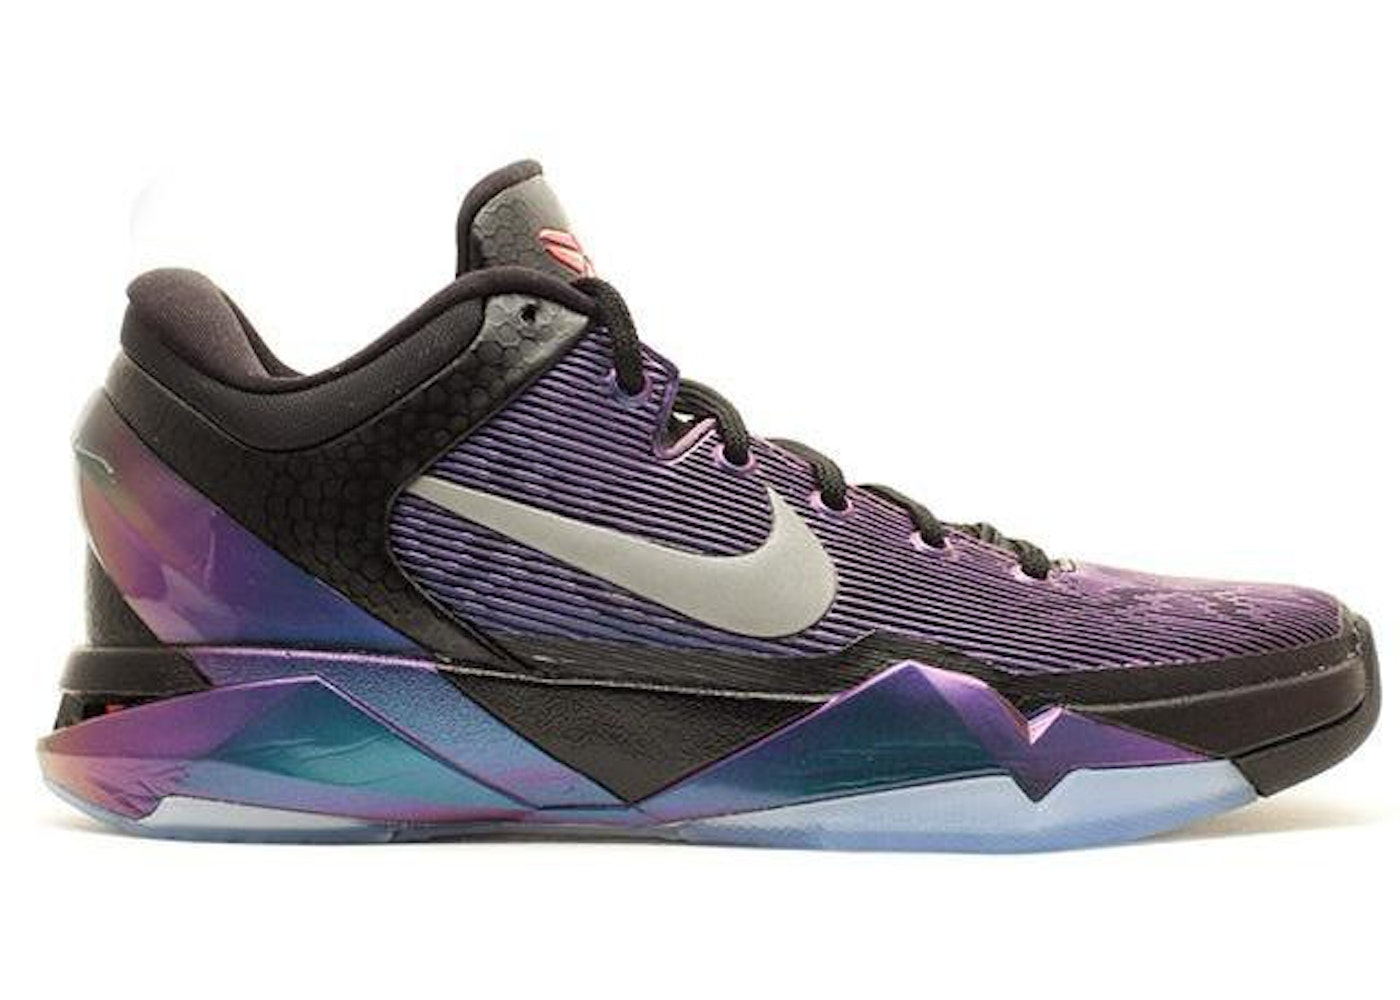 8fb5efb09674 ... Black Court Purple-Turquoise Blue 488371 005 Nike Kobe 7 Invisibility  Cloak ...